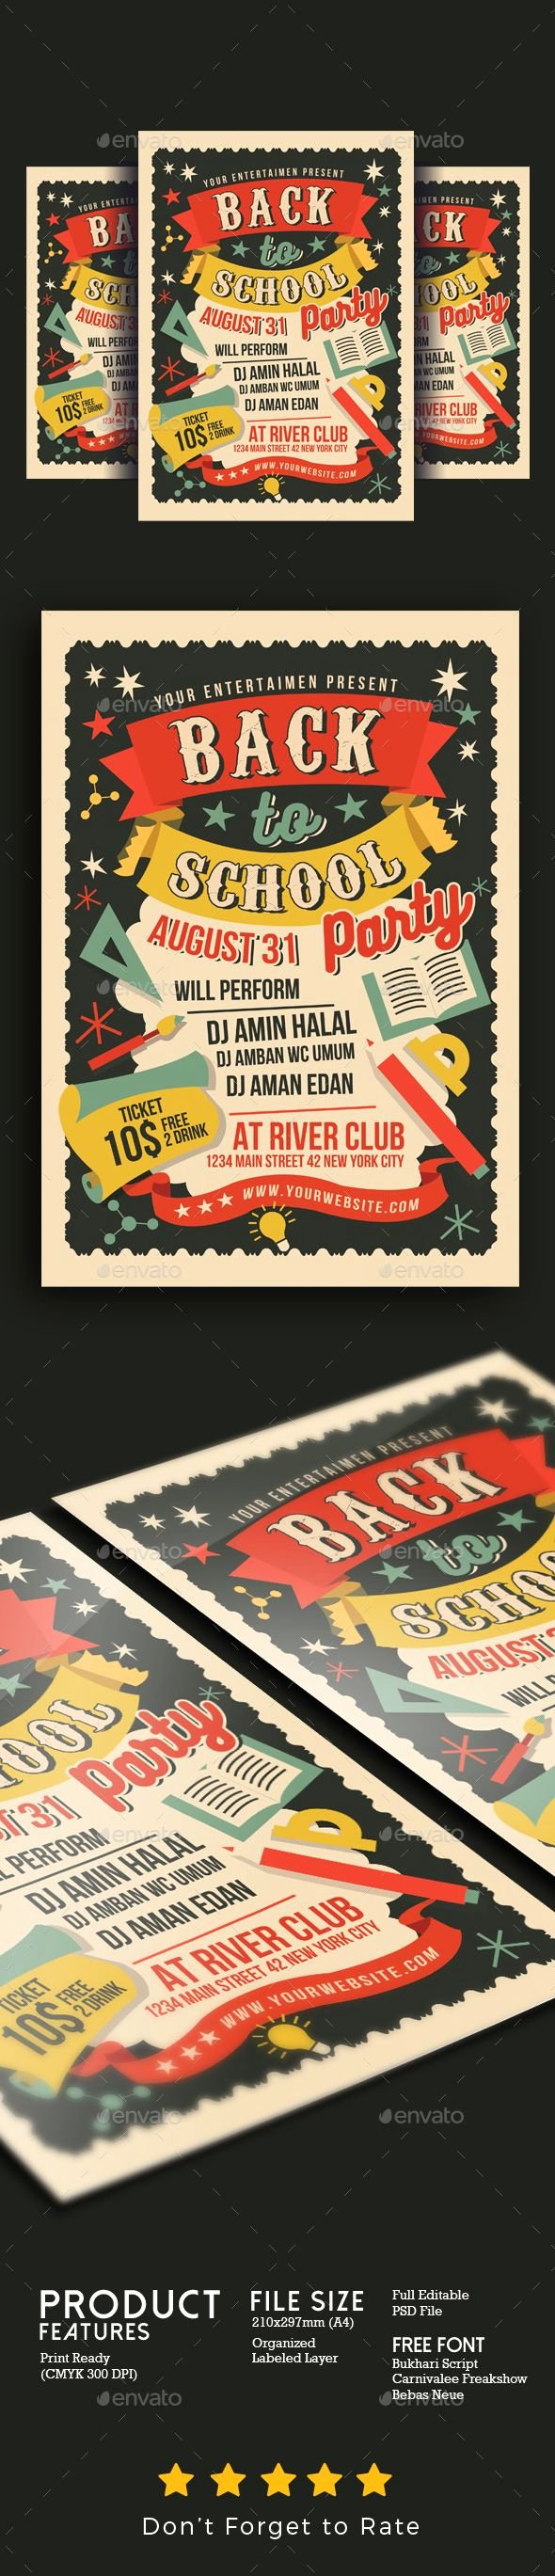 School Dance Flyer Template Inspirational Pin by Best Graphic Design On Flyer Templates